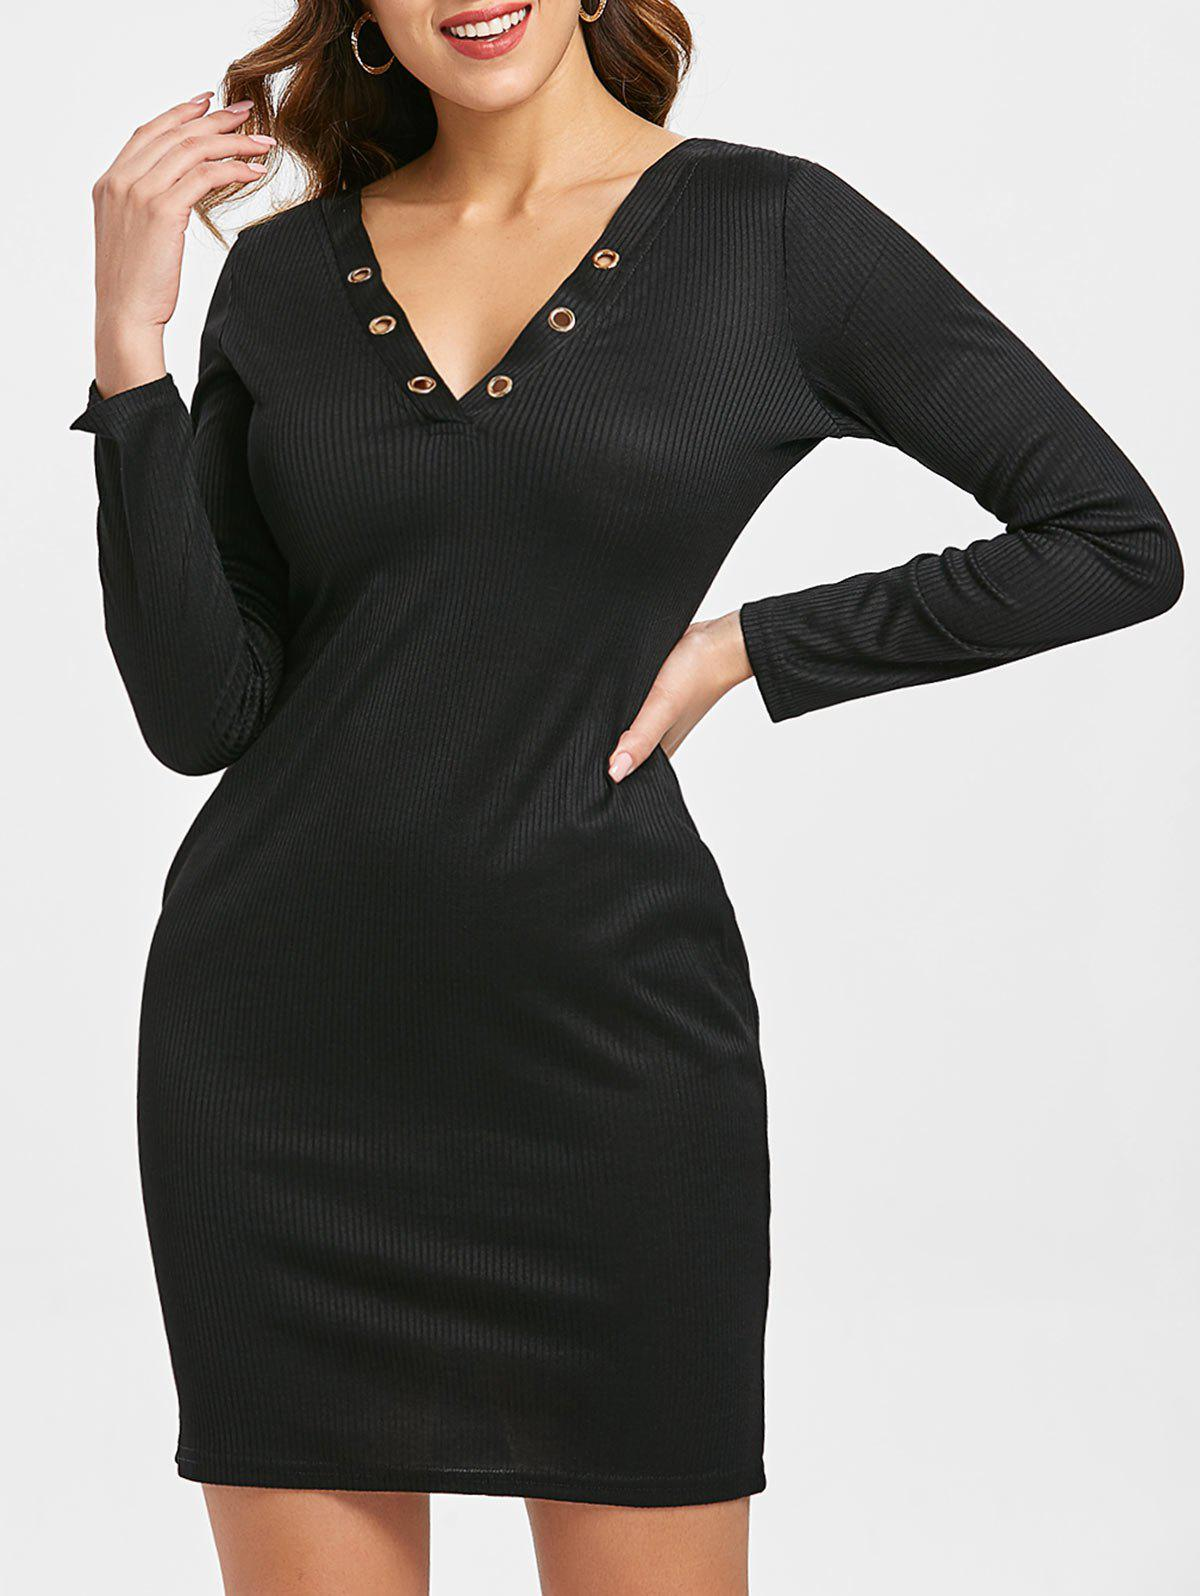 Hot V Neck Ribbed Sheath Dress